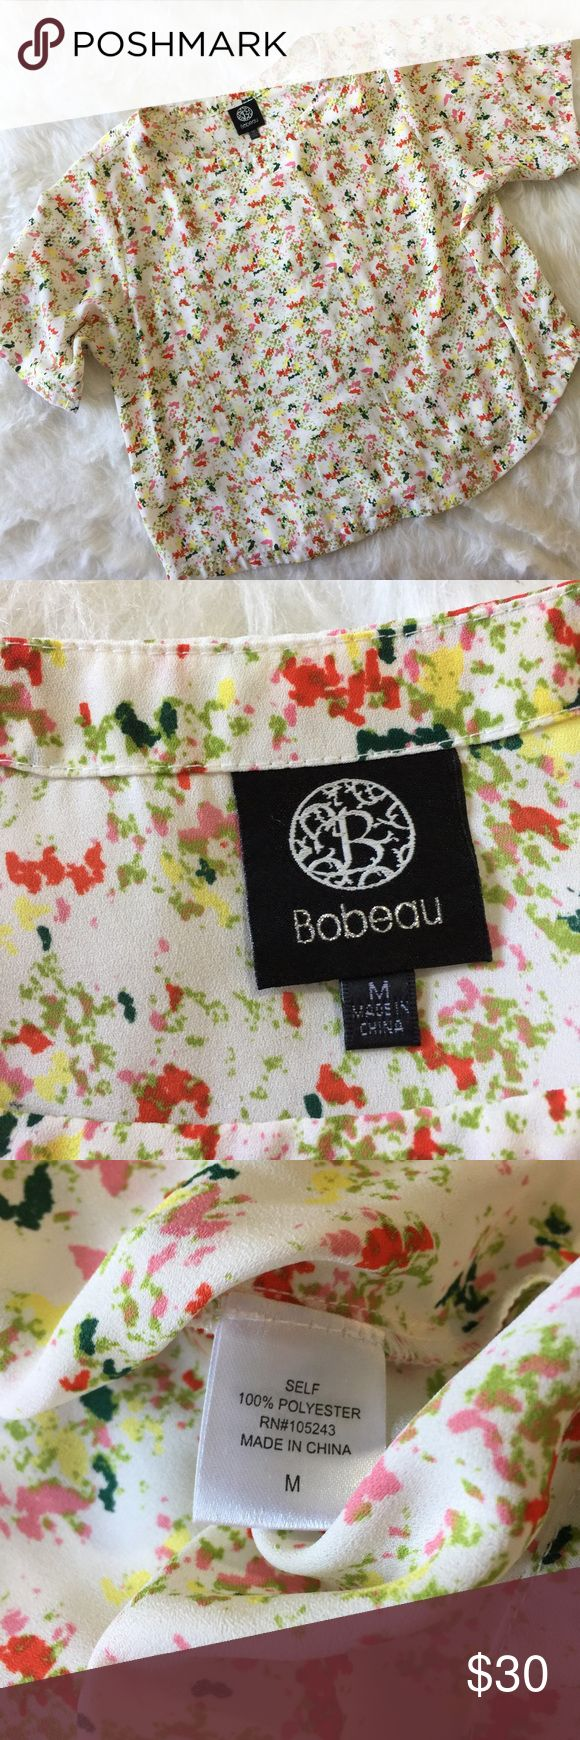 Bobeau Multi Color Blouse This blouse is in perfect condition! Size medium. No flaws like stains or holes. Smoke and pet free home. No trades. bobeau Tops Tees - Short Sleeve